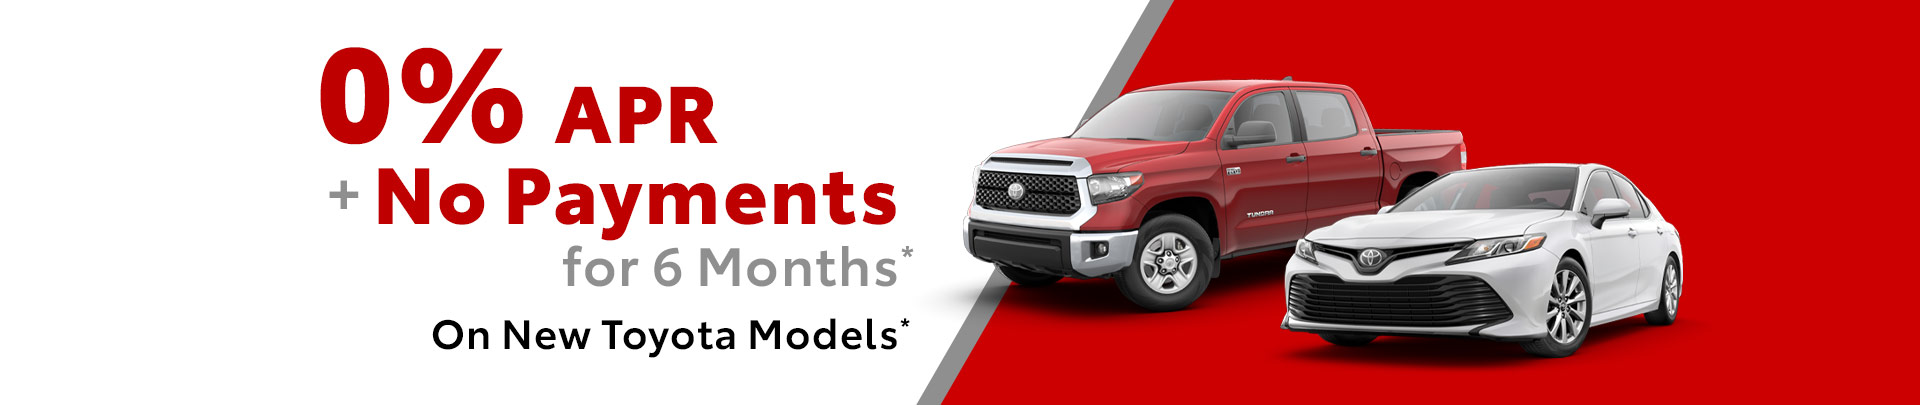 0% APR + No Payments for 6 Months* On New Toyota Models